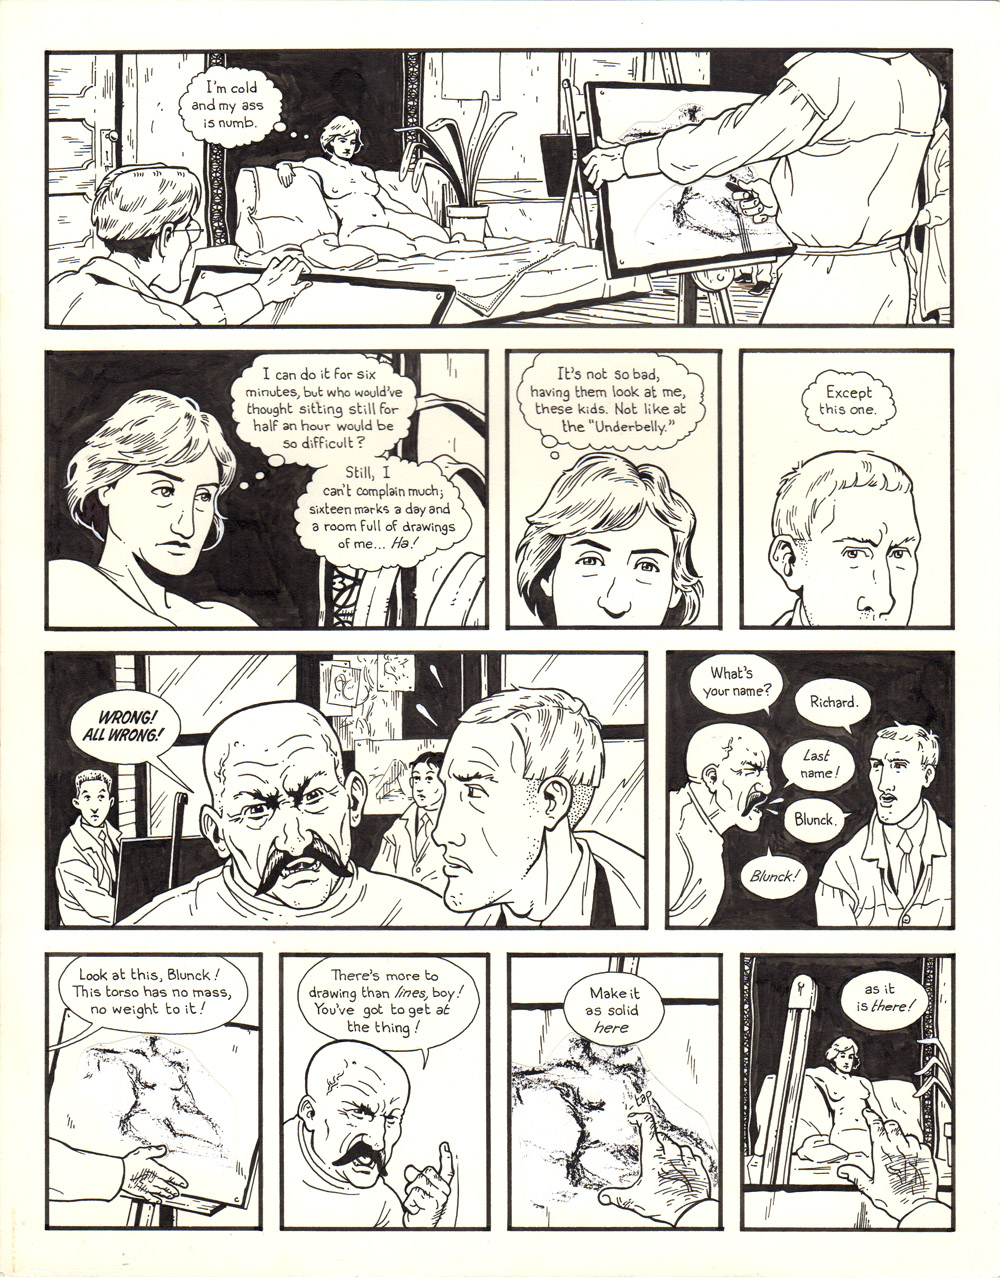 Berlin: Book 1 - Page 032